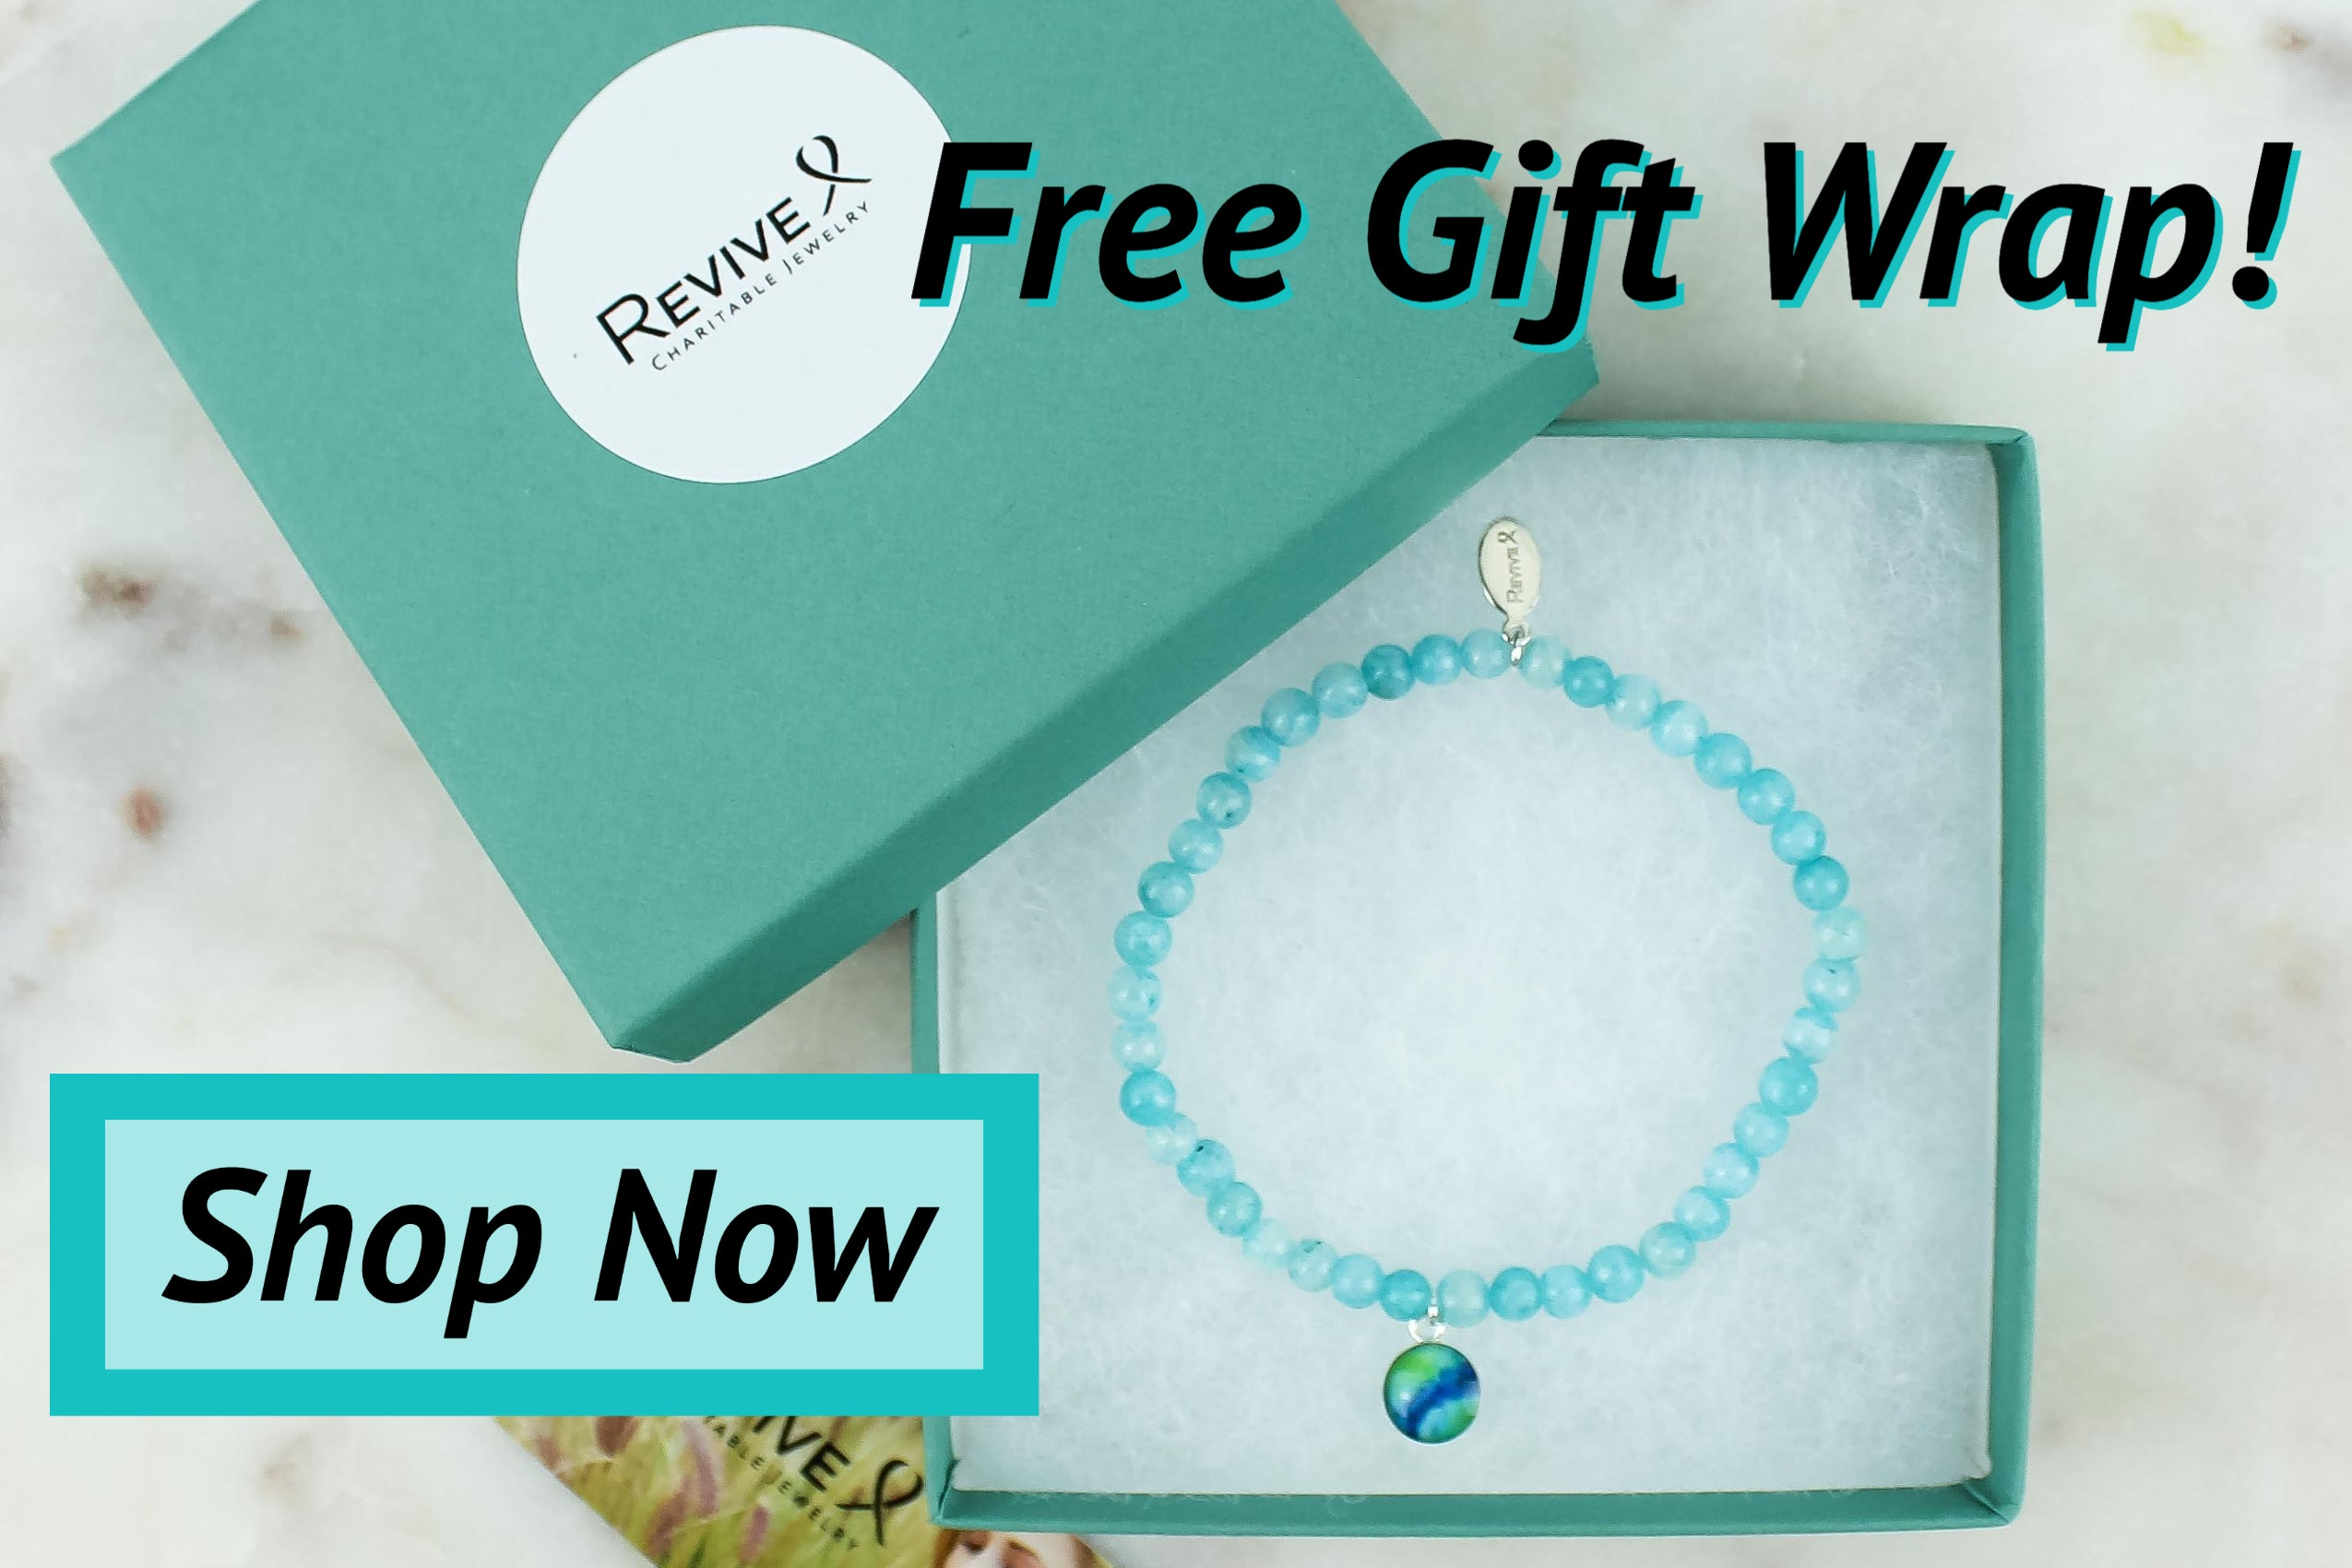 free gift wrap awareness bracelet in gift box